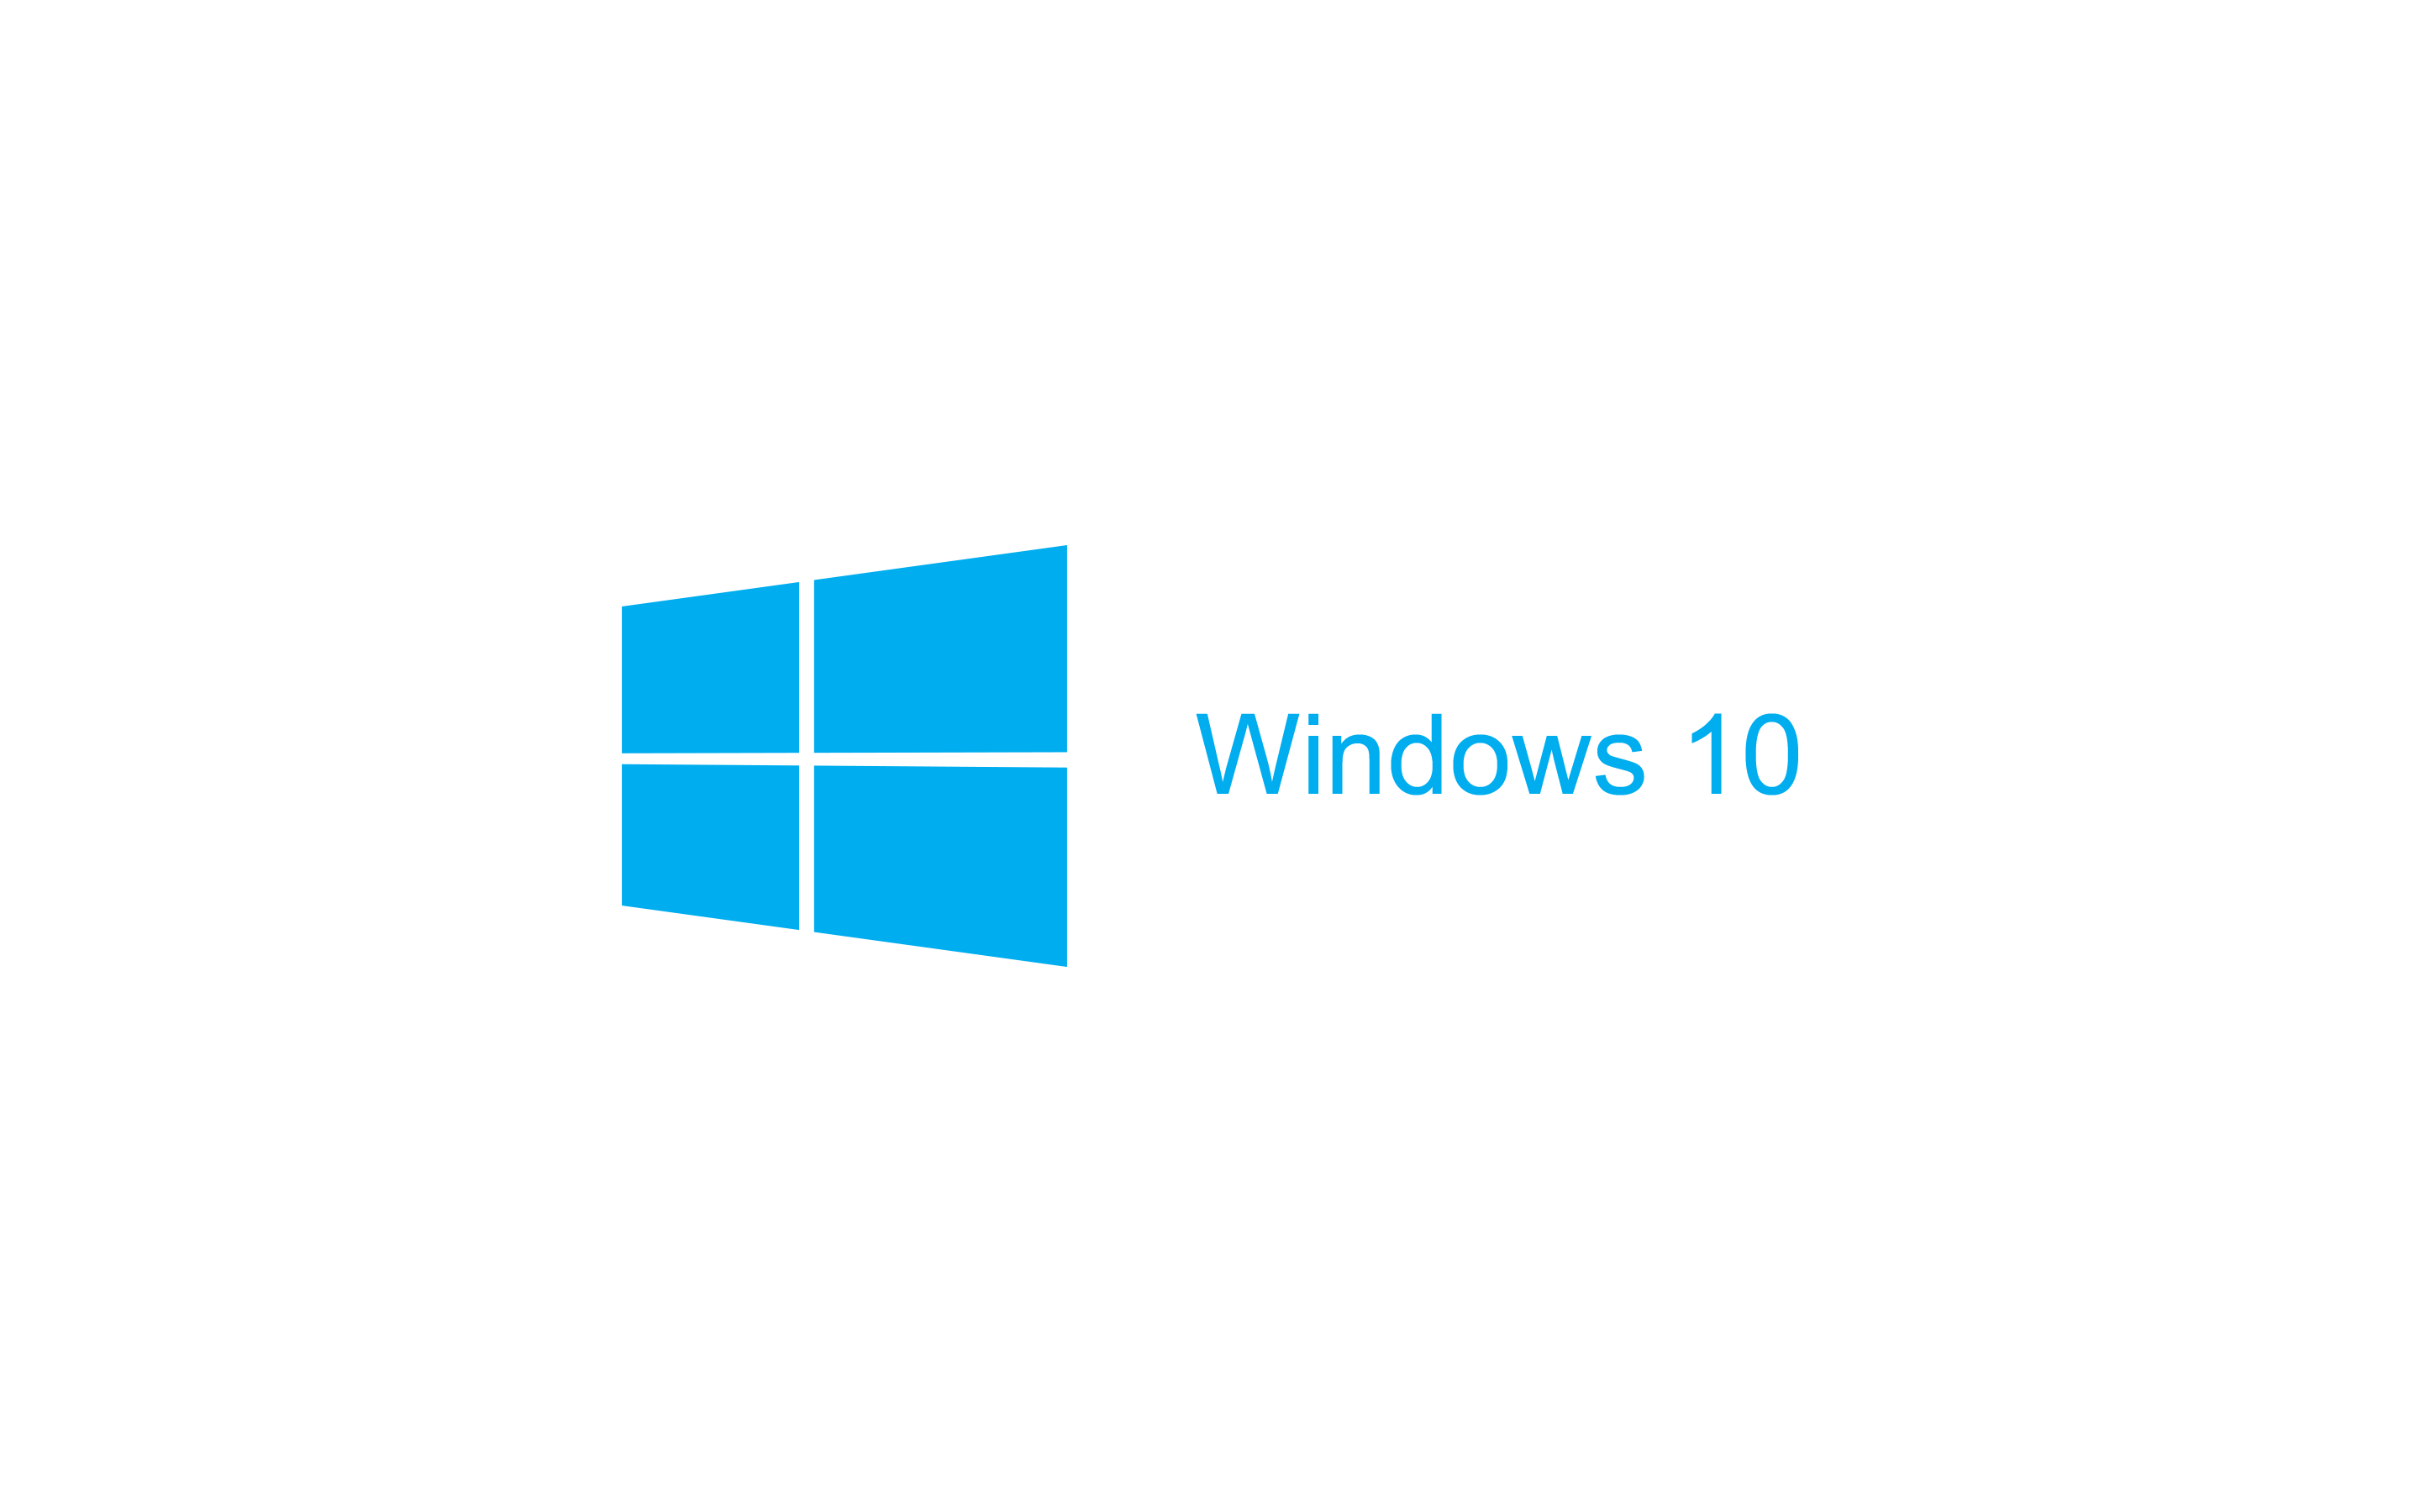 Windows 10 will be the last version of the greatest OS of all time